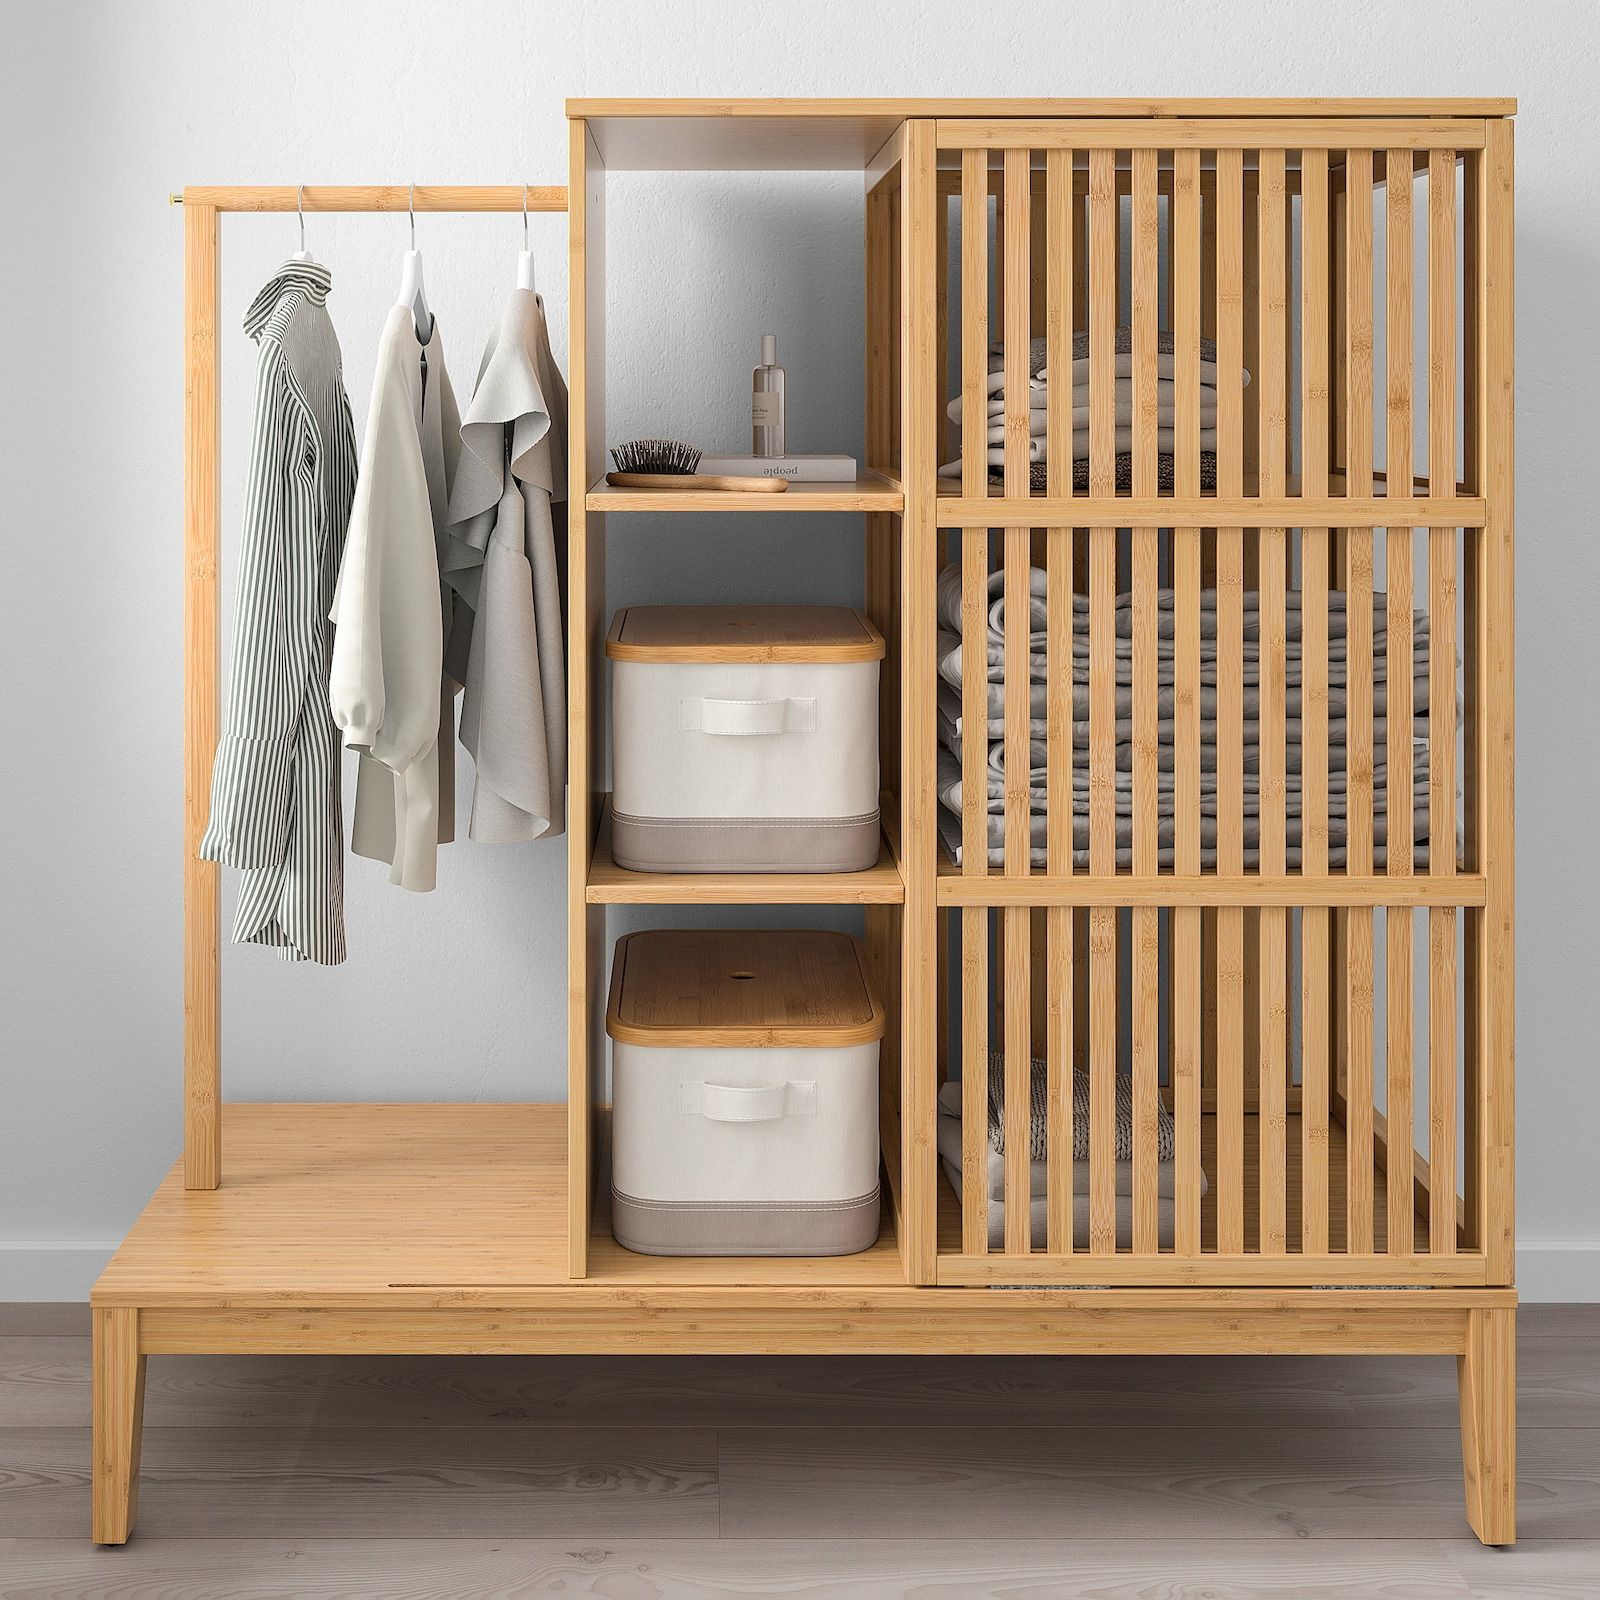 Nordkisa Bamboo Open Wardrobe With Sliding Door Width 120 Cm Height 123 Cm Ikea In 2020 Sliding Wardrobe Doors Open Wardrobe Furniture Design